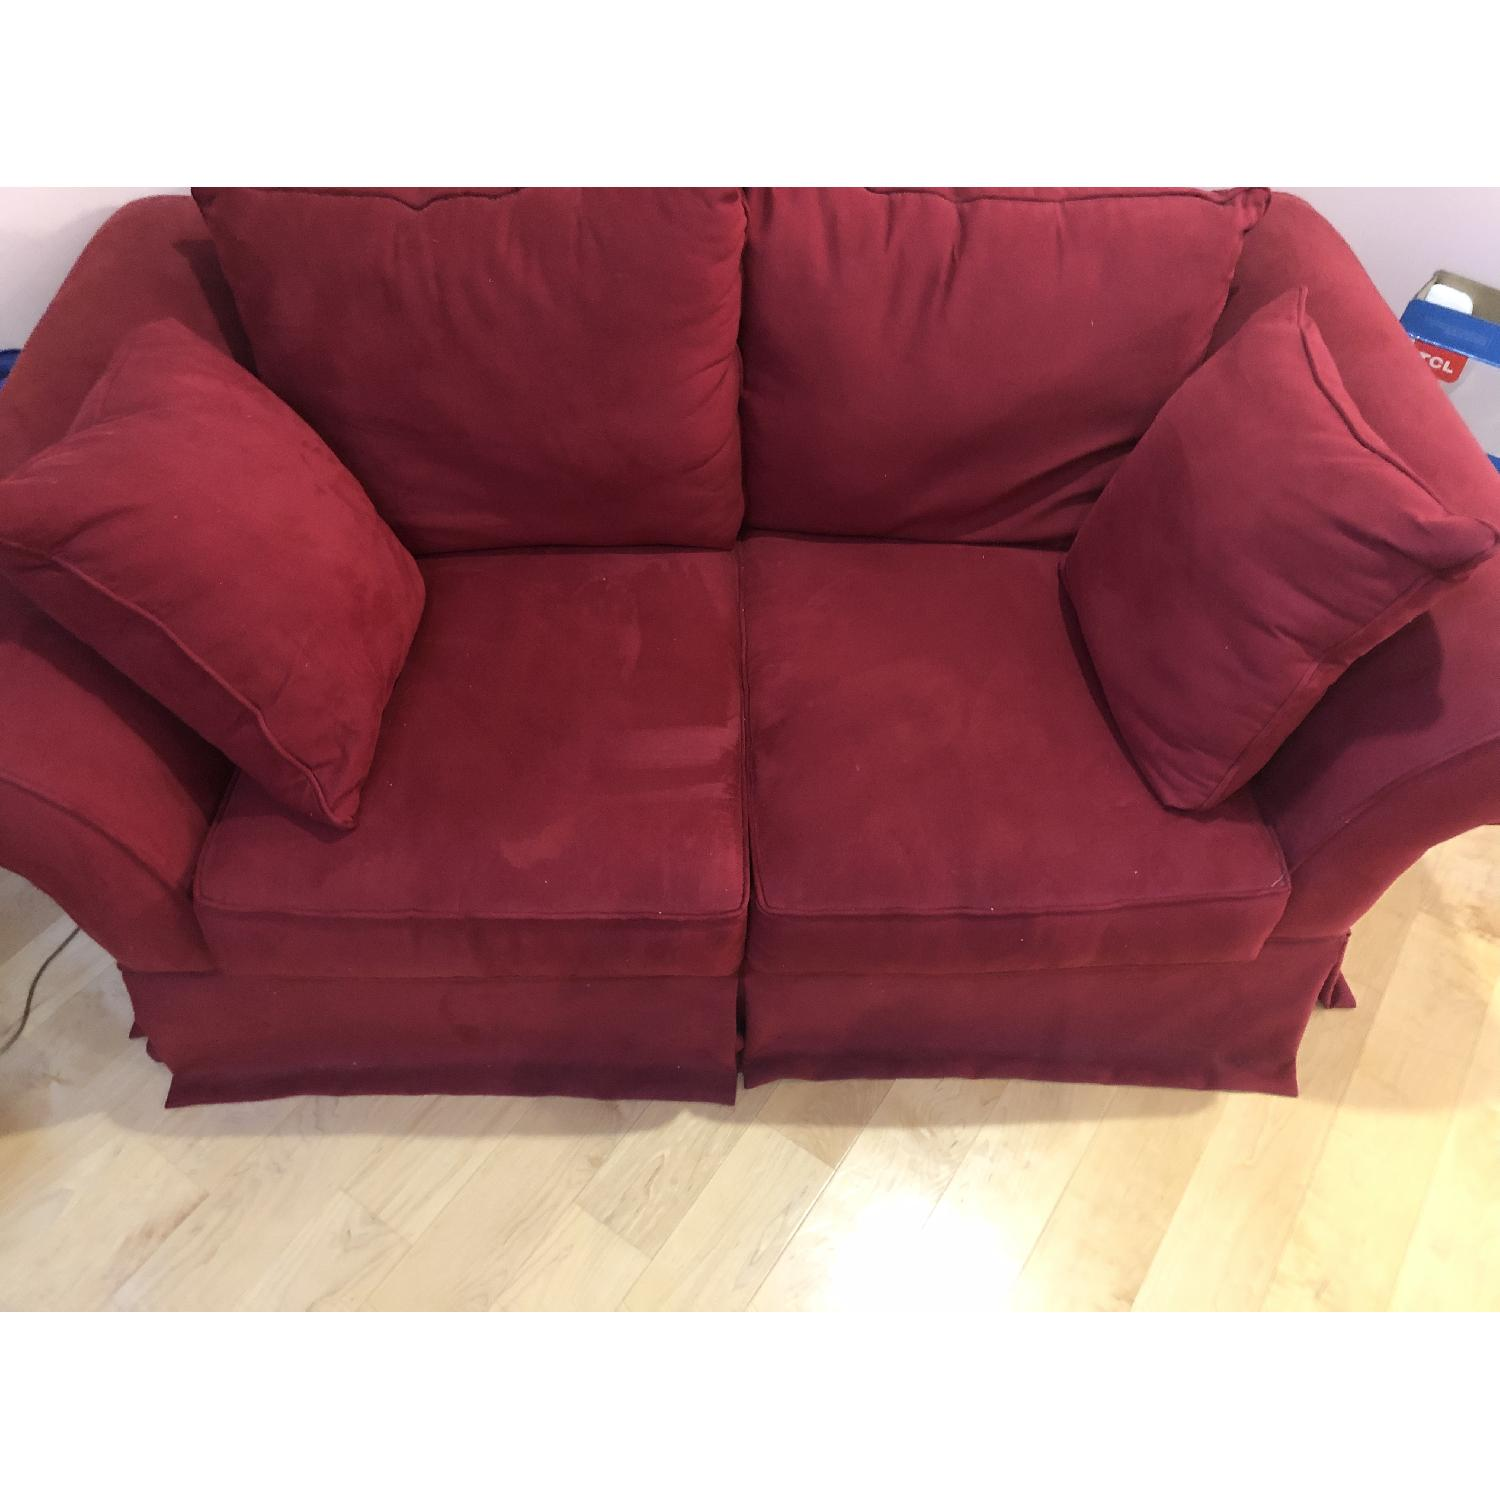 H.M. Richards Red Suede Loveseat - image-1